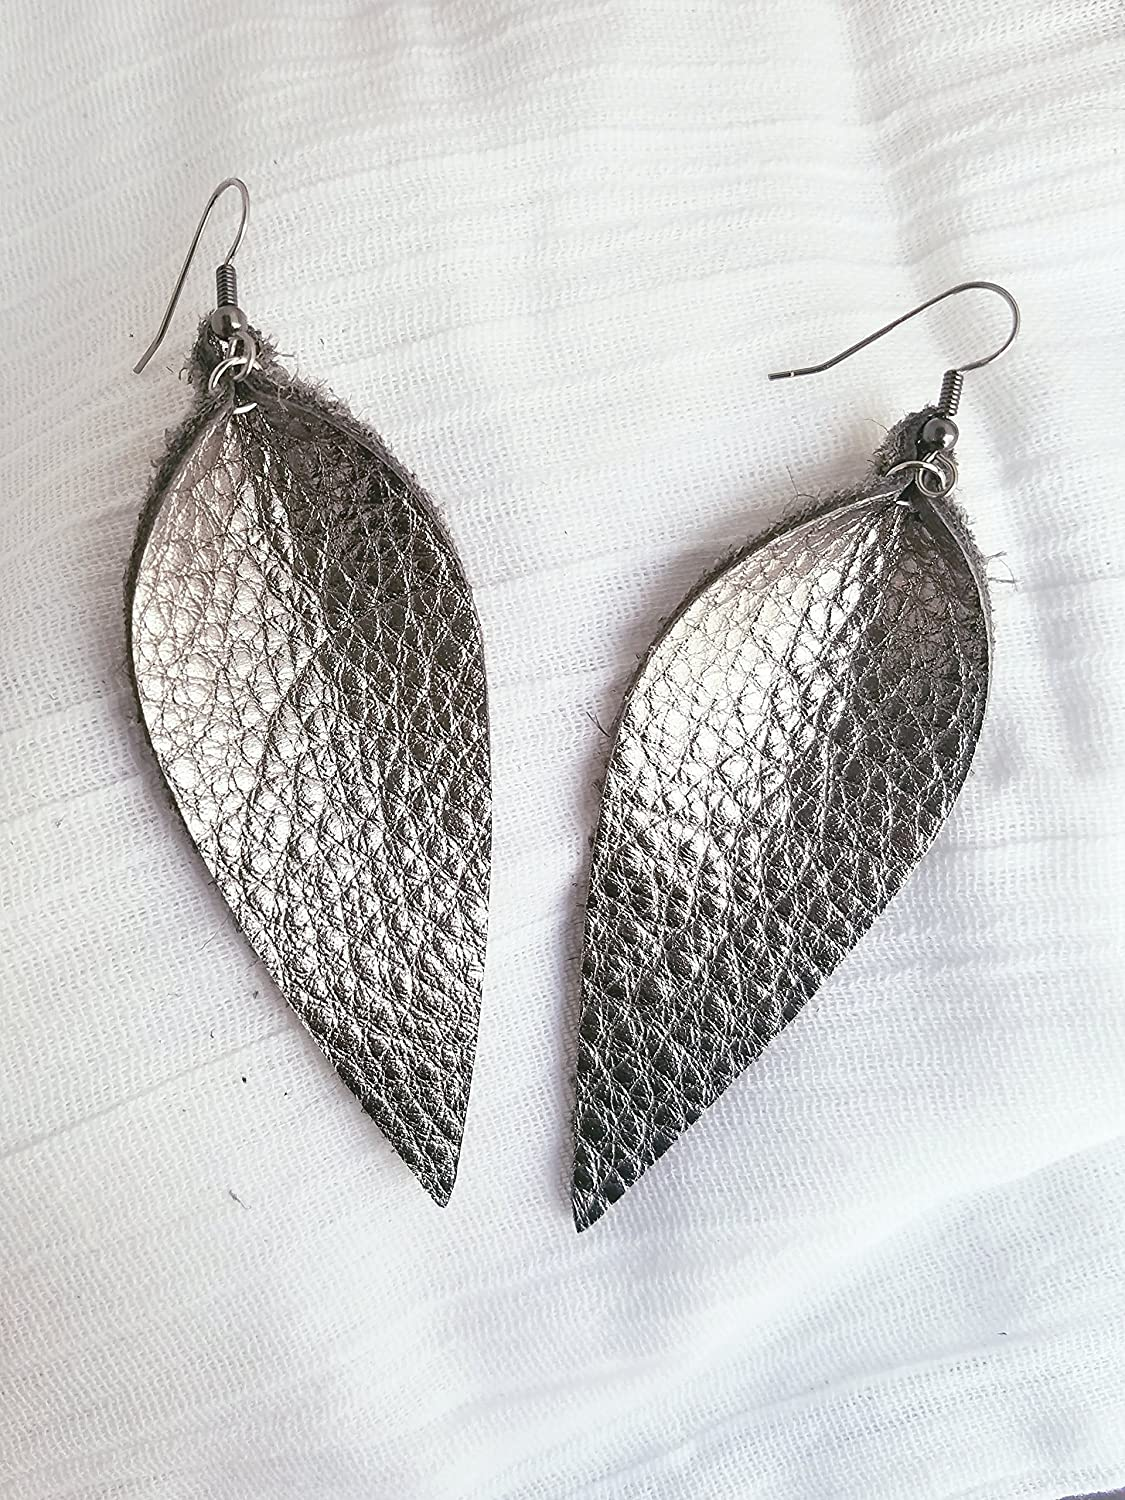 Silver Metallic/Leather Earrings/FREE SHIPPING/Joanna Gaines/Zia/Statement/Leaf/Large/3.25